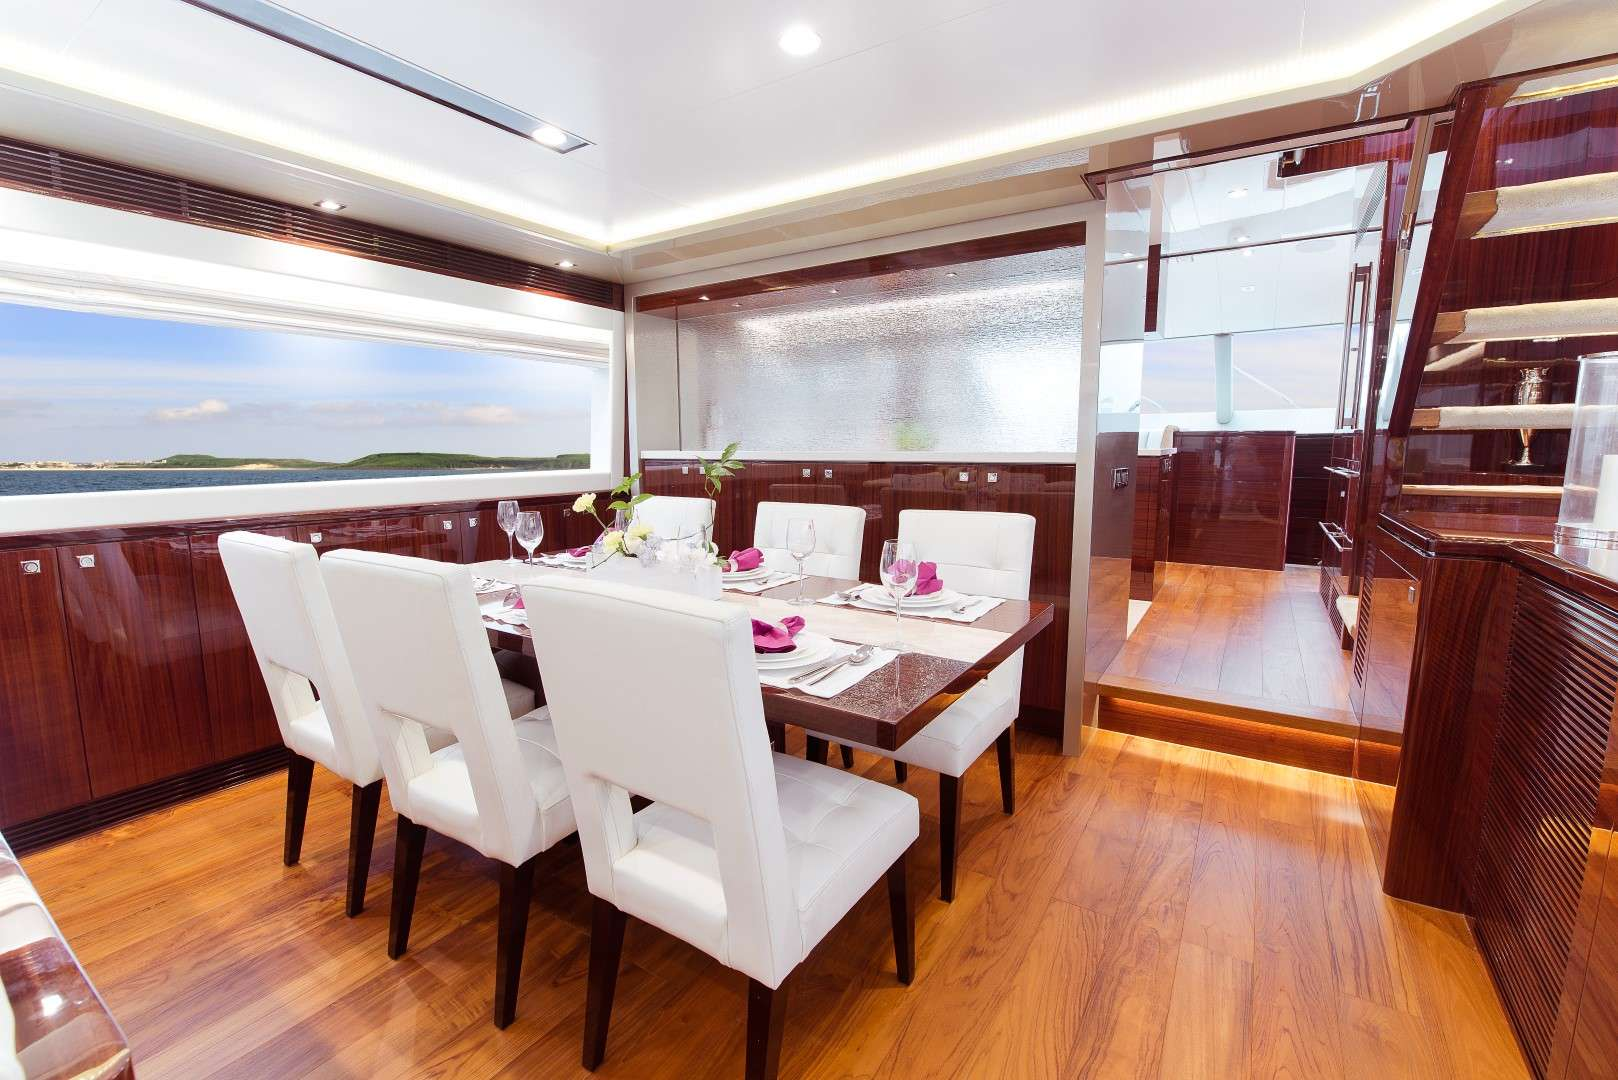 onboard - Aqua Motor Yacht - yacht for rent in dubai